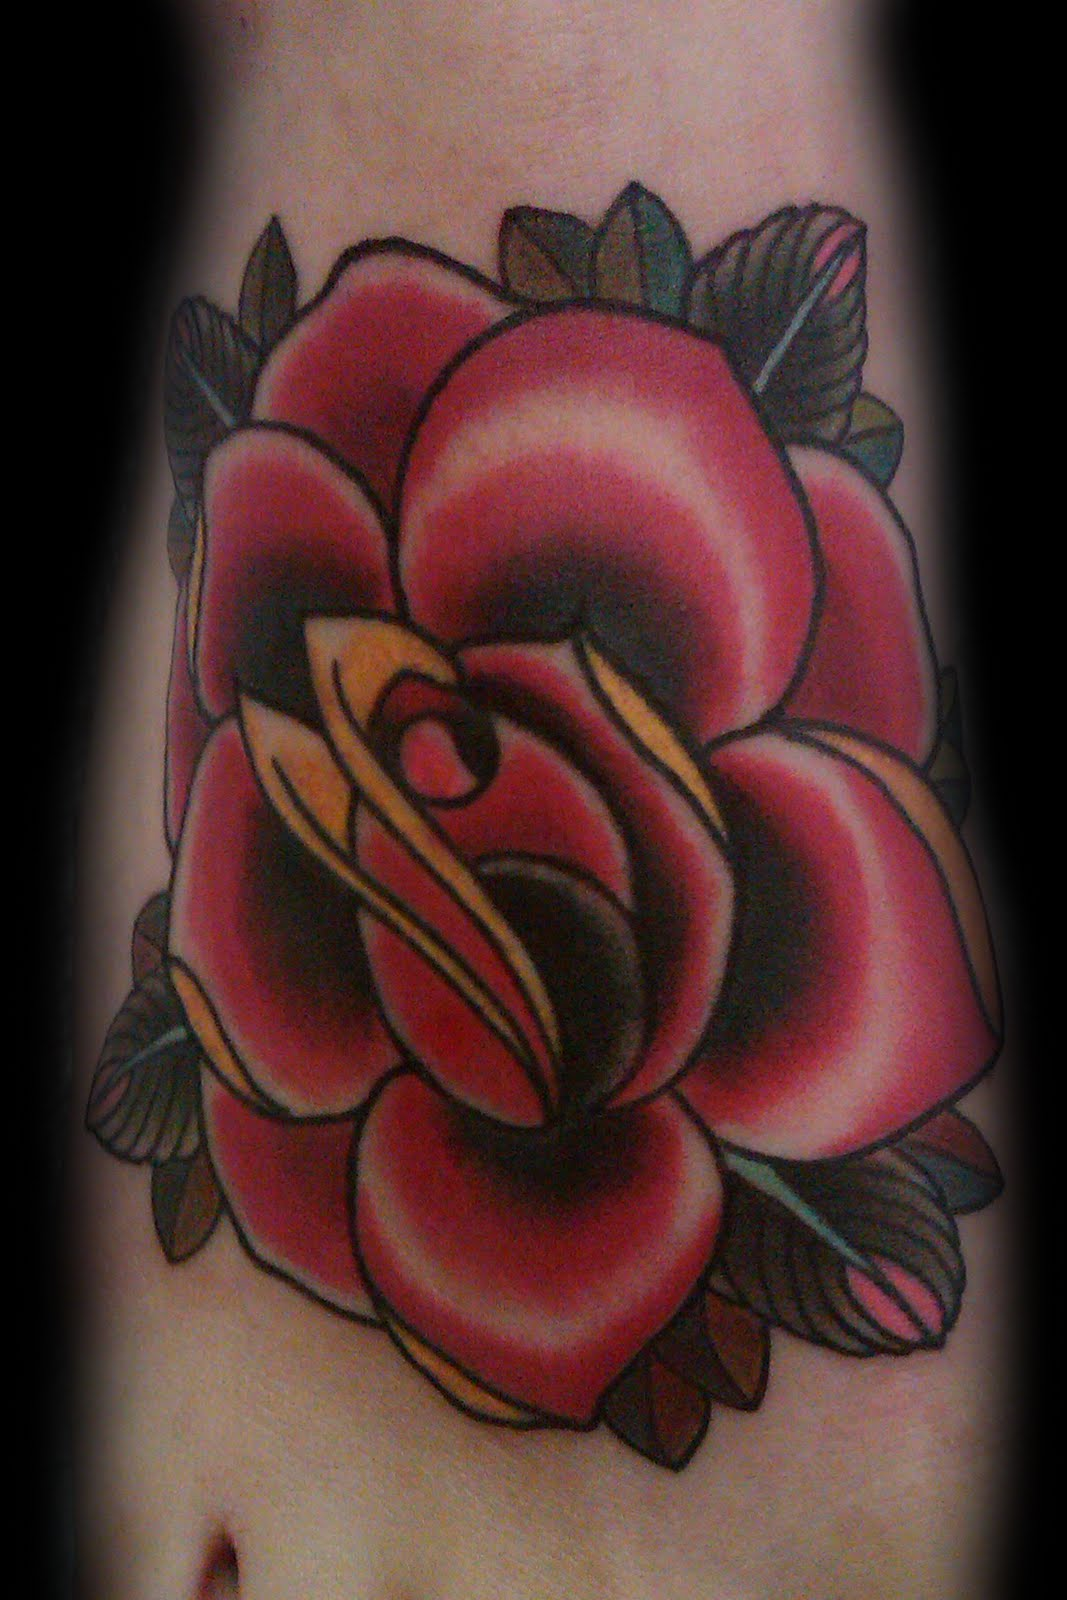 delicate women rose tattoo designs for 2011 foot rose tattoo design for youngr girls. Black Bedroom Furniture Sets. Home Design Ideas